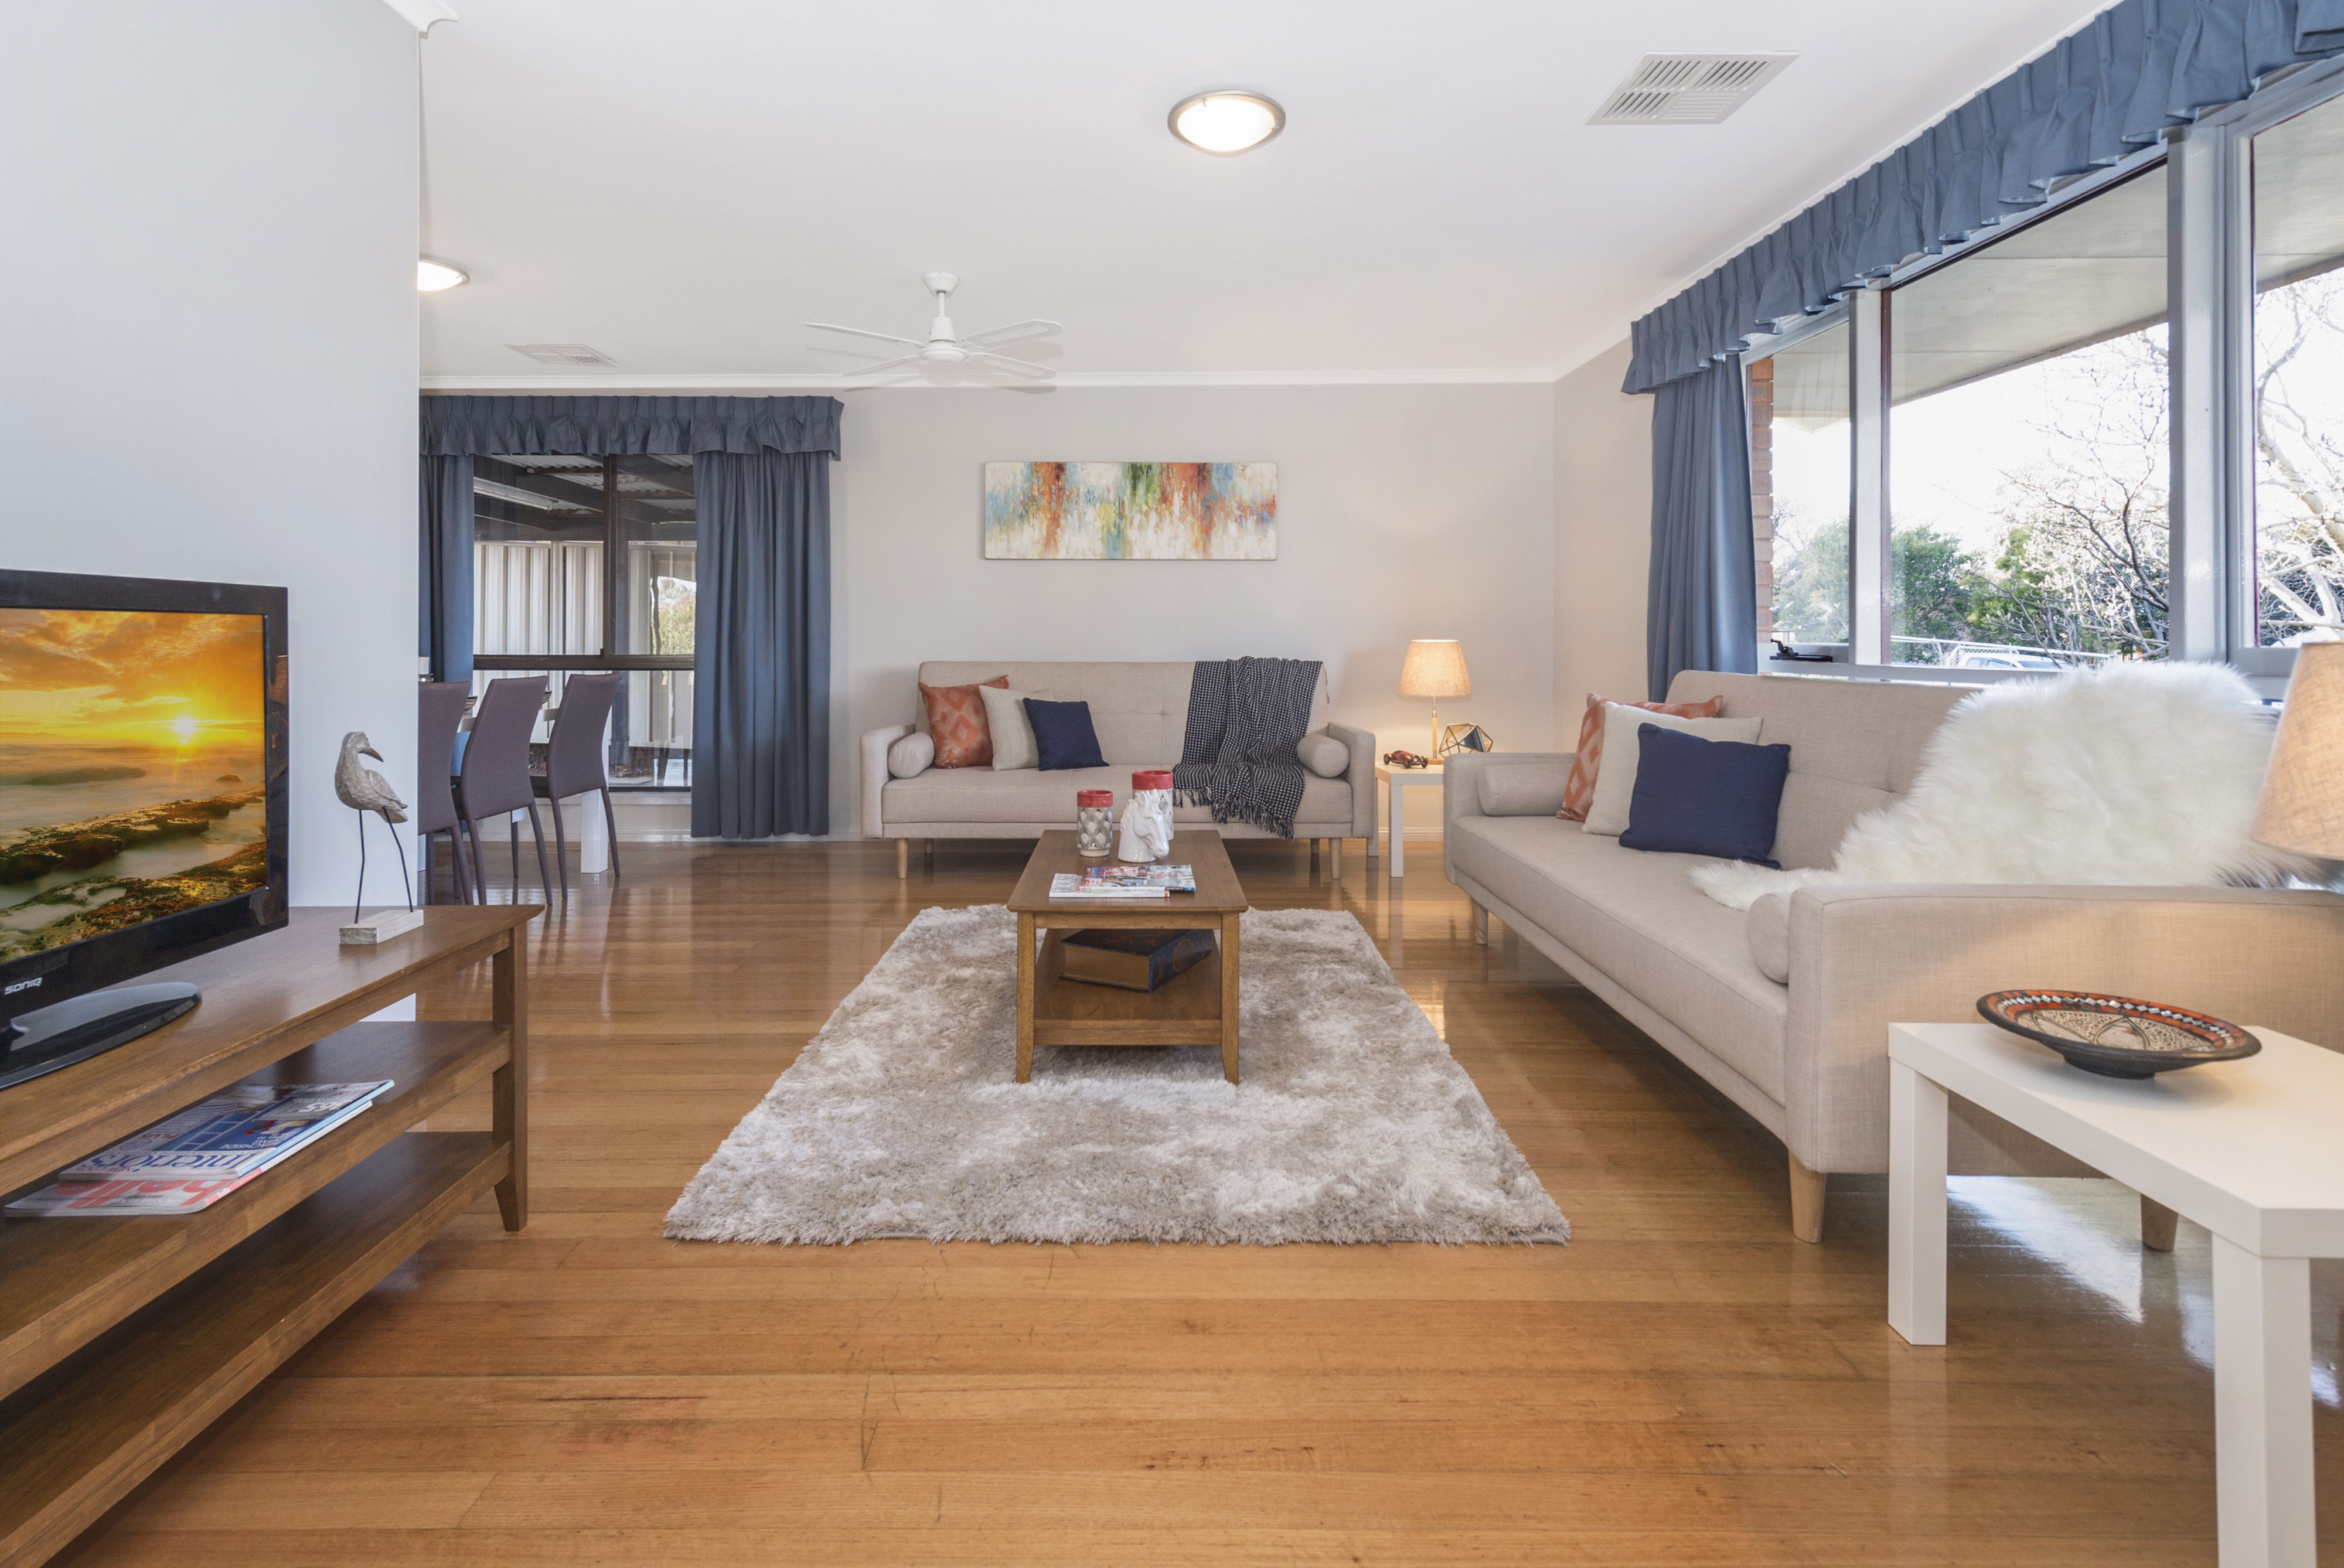 Should I invest in property styling?